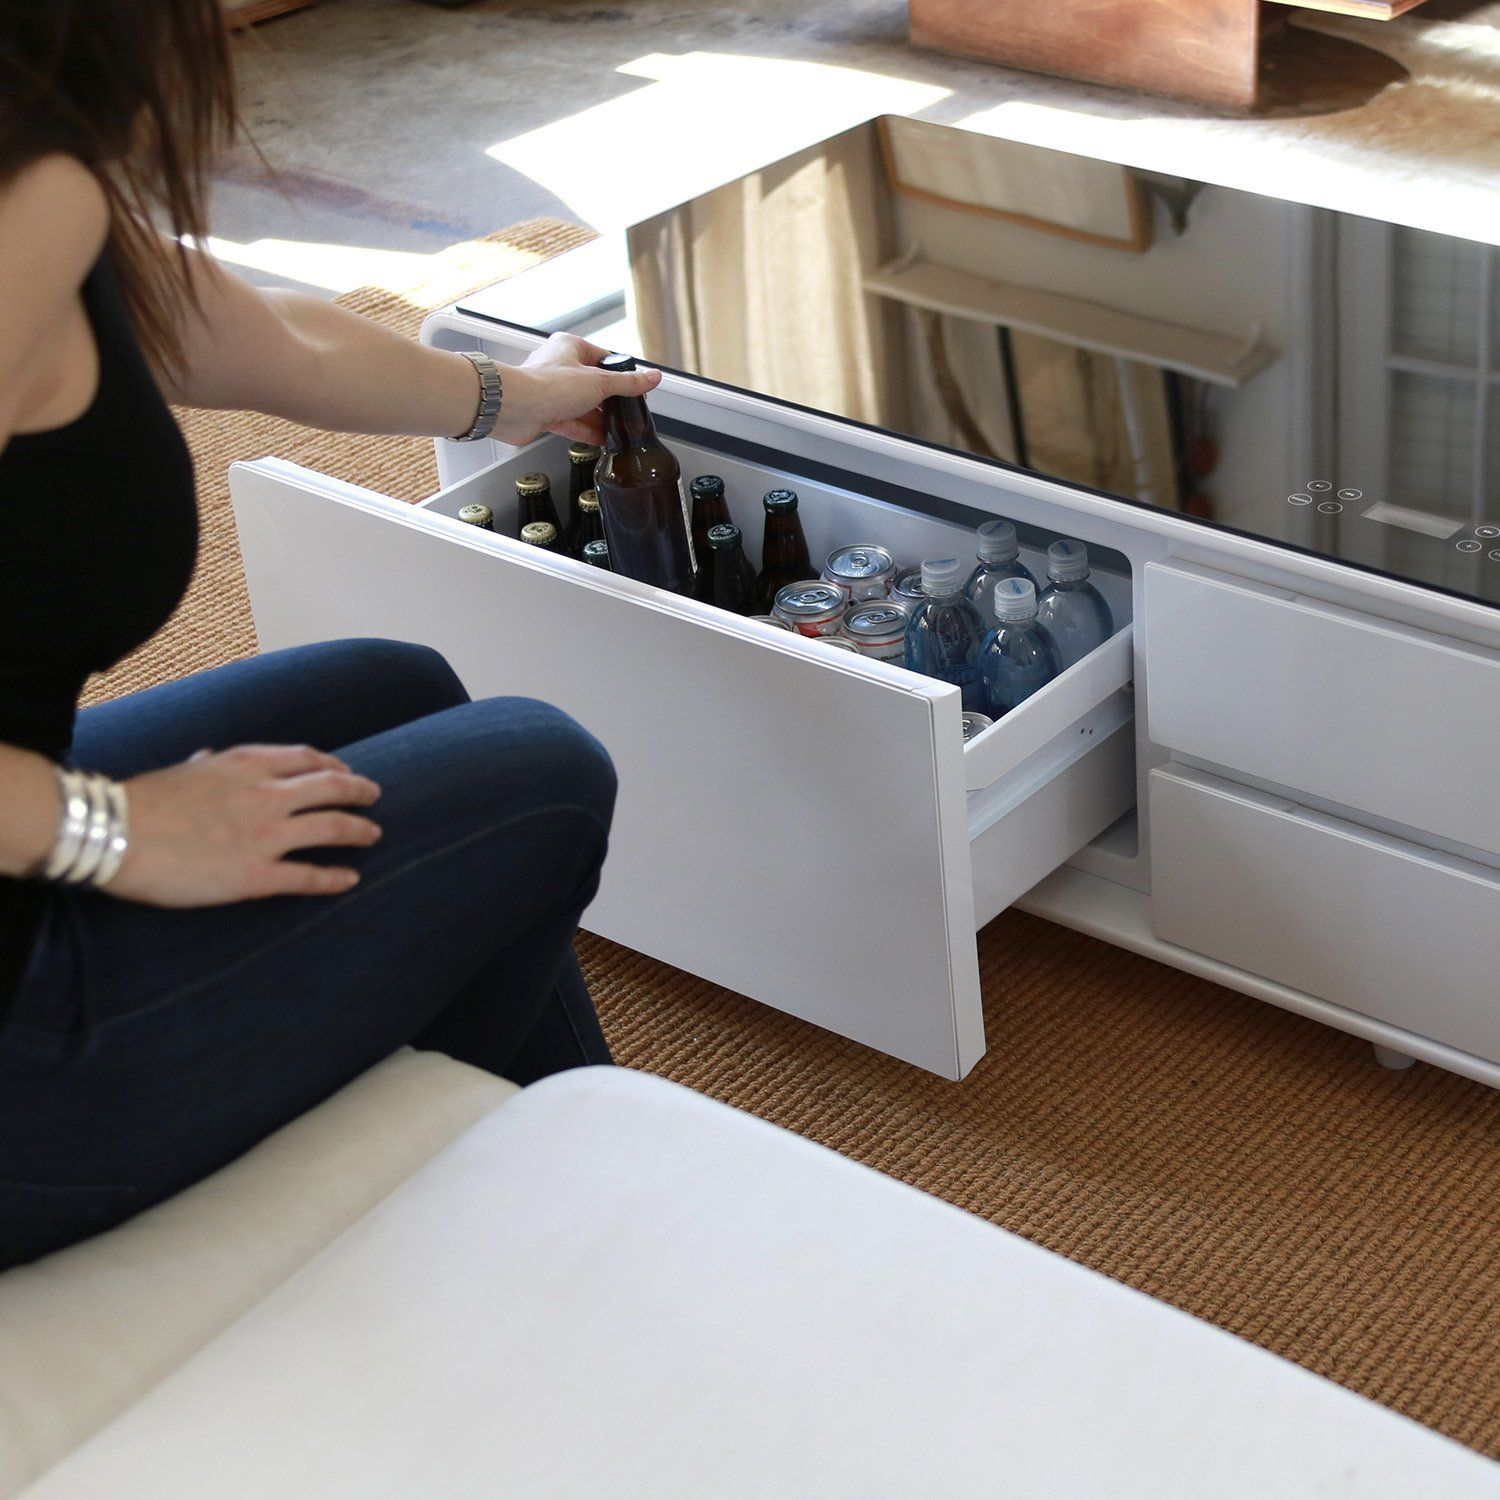 Coffee Table With Refrigerator Useful Tools Store Coffee Table Refrigerator Modern Coffee Tables Coffee Table Design [ 1500 x 1500 Pixel ]